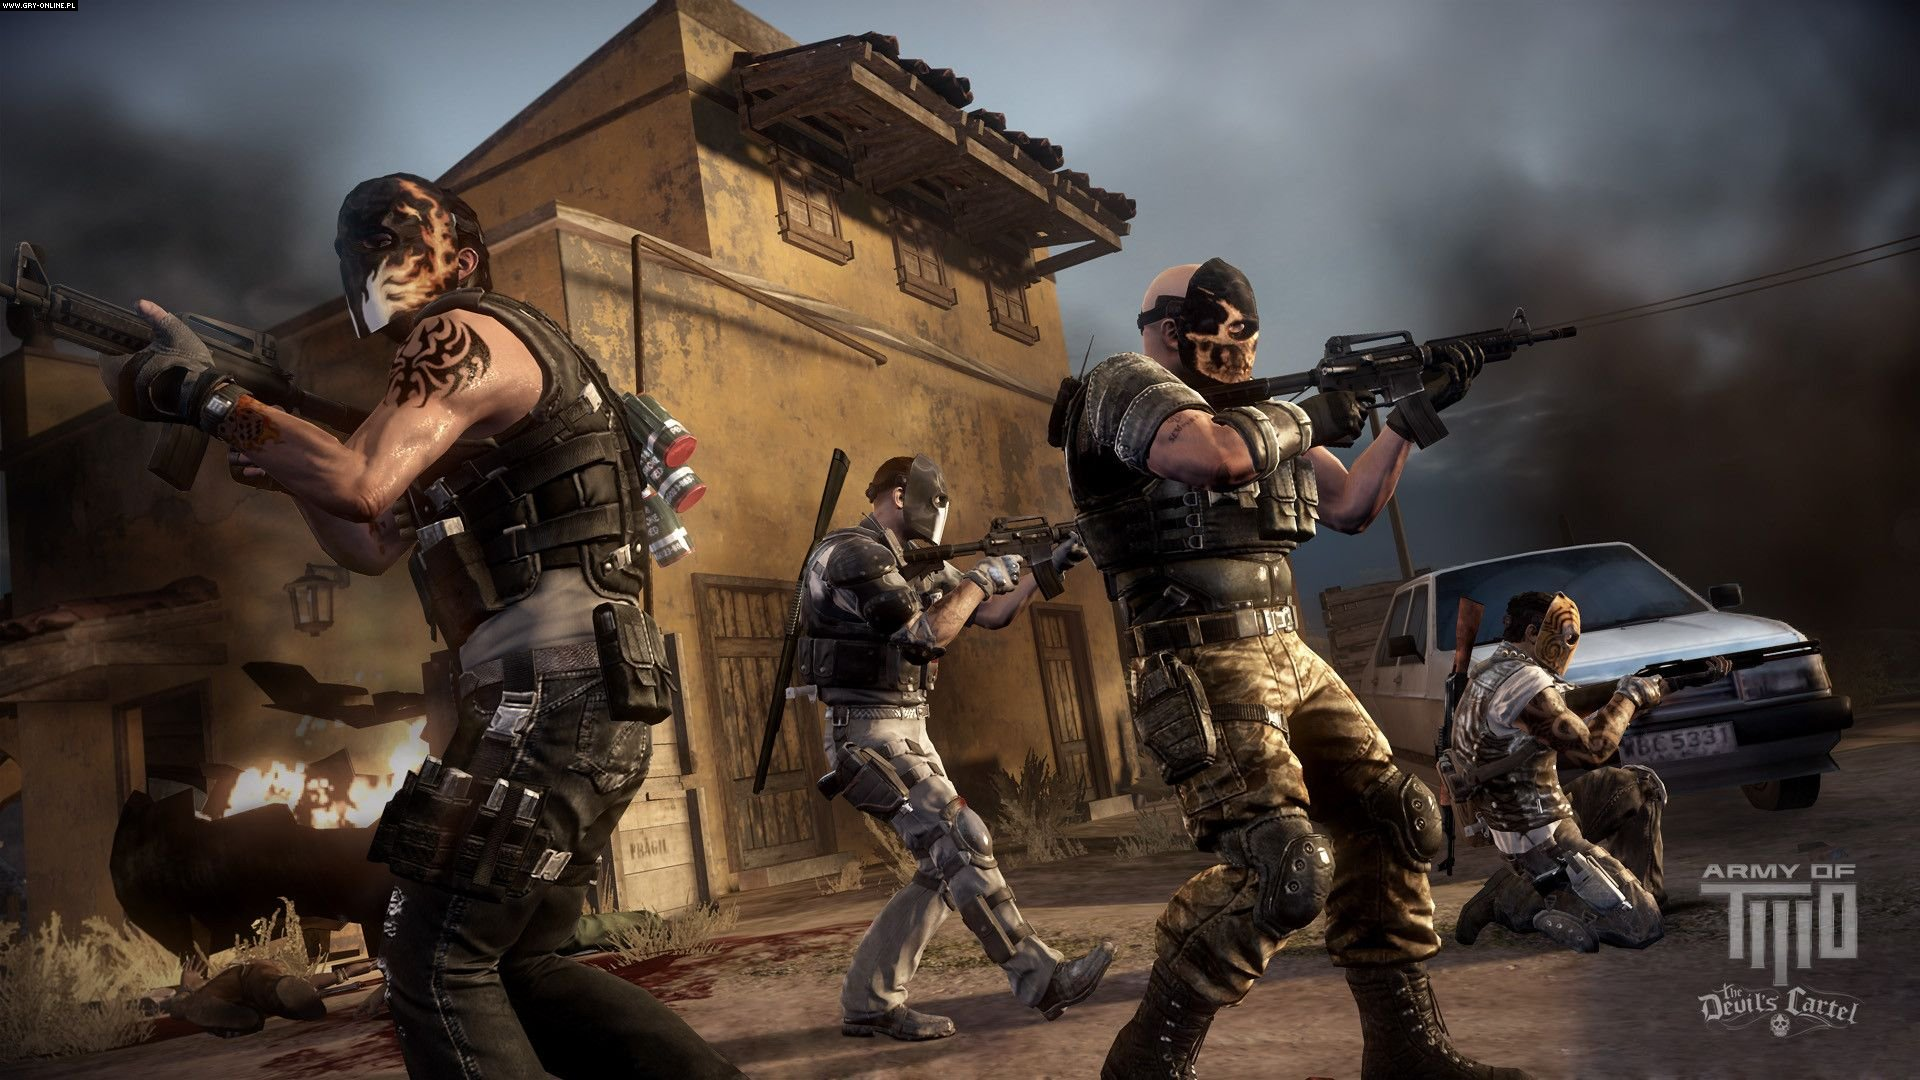 Army of Two: The Devil's Cartel X360, PS3 Gry Screen 16/43, Electronic Arts Inc.